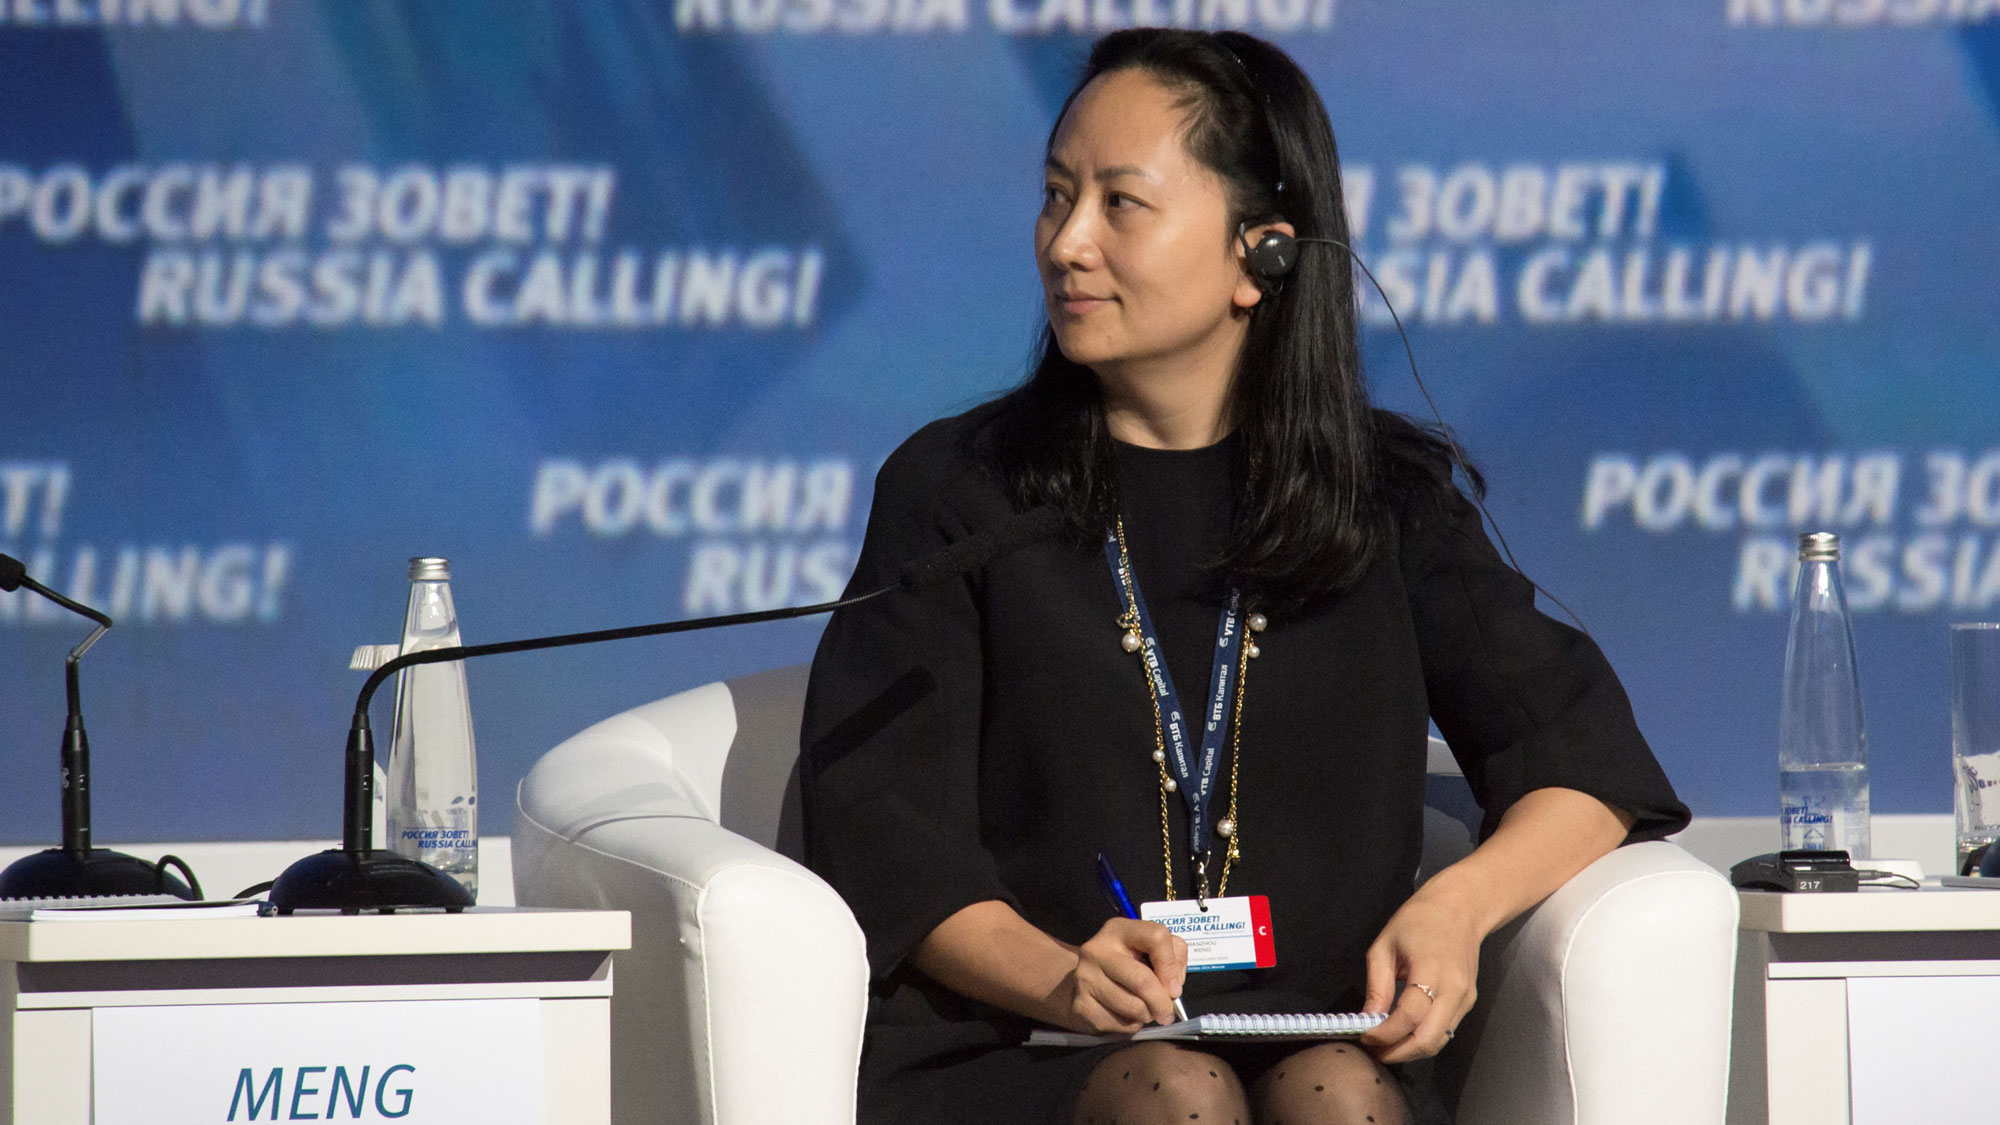 """Meng Wanzhou, wearing all black, is shown seated with a pen and notepad at a session of the VTB Capital Investment Forum """"Russia Calling!"""" in Moscow, Russia, 2014."""